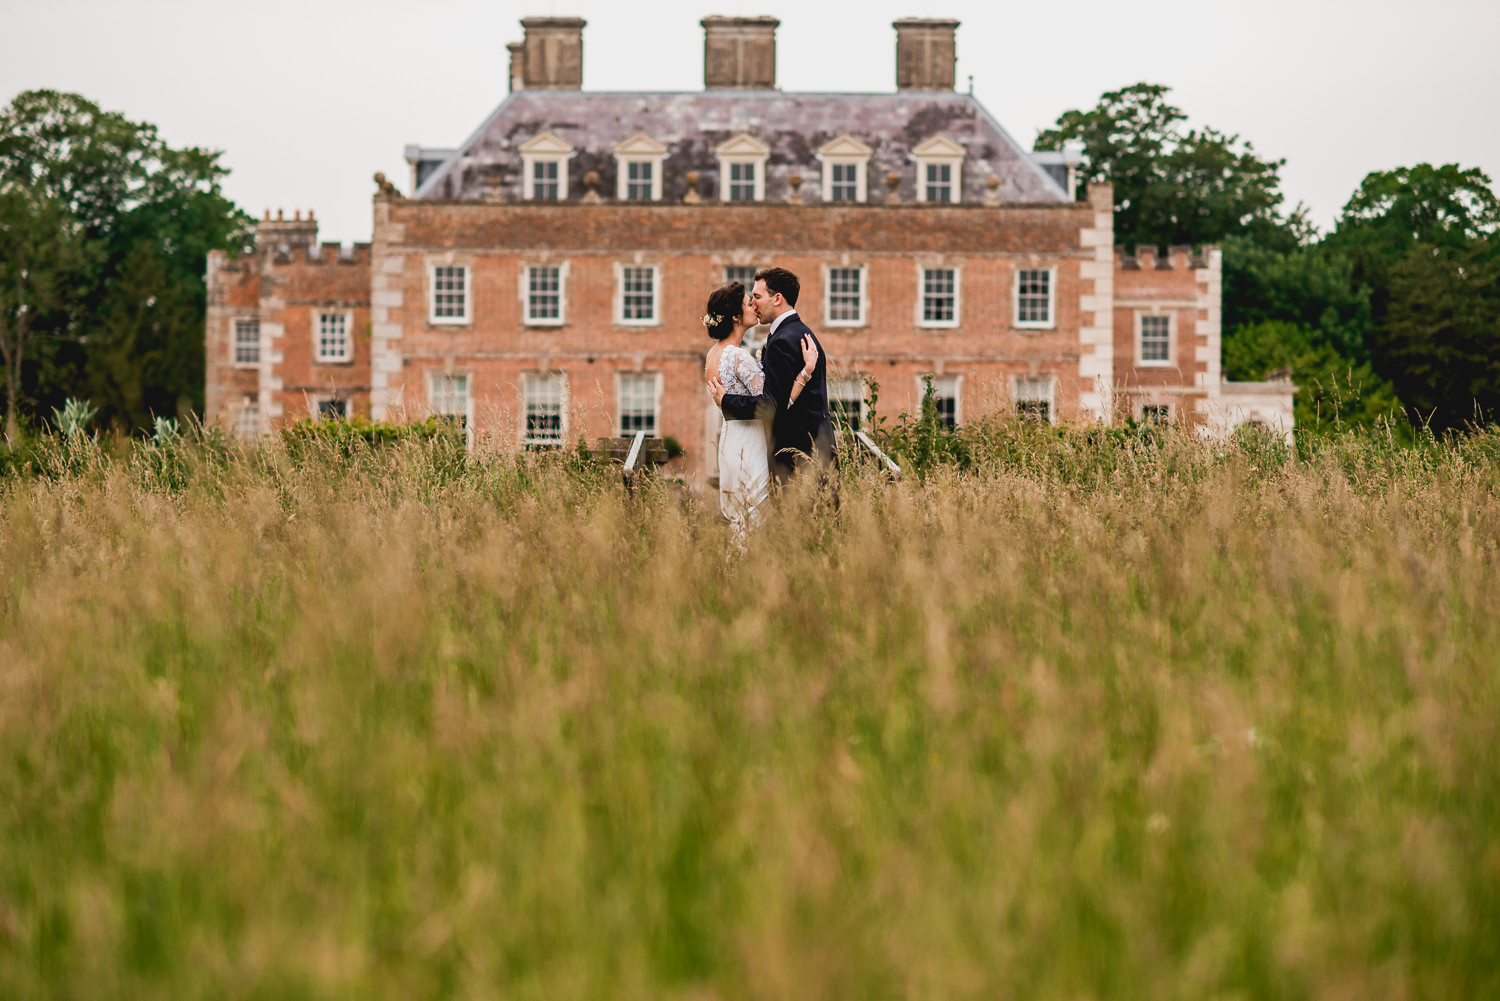 Best Wedding Photographer at St Giles House